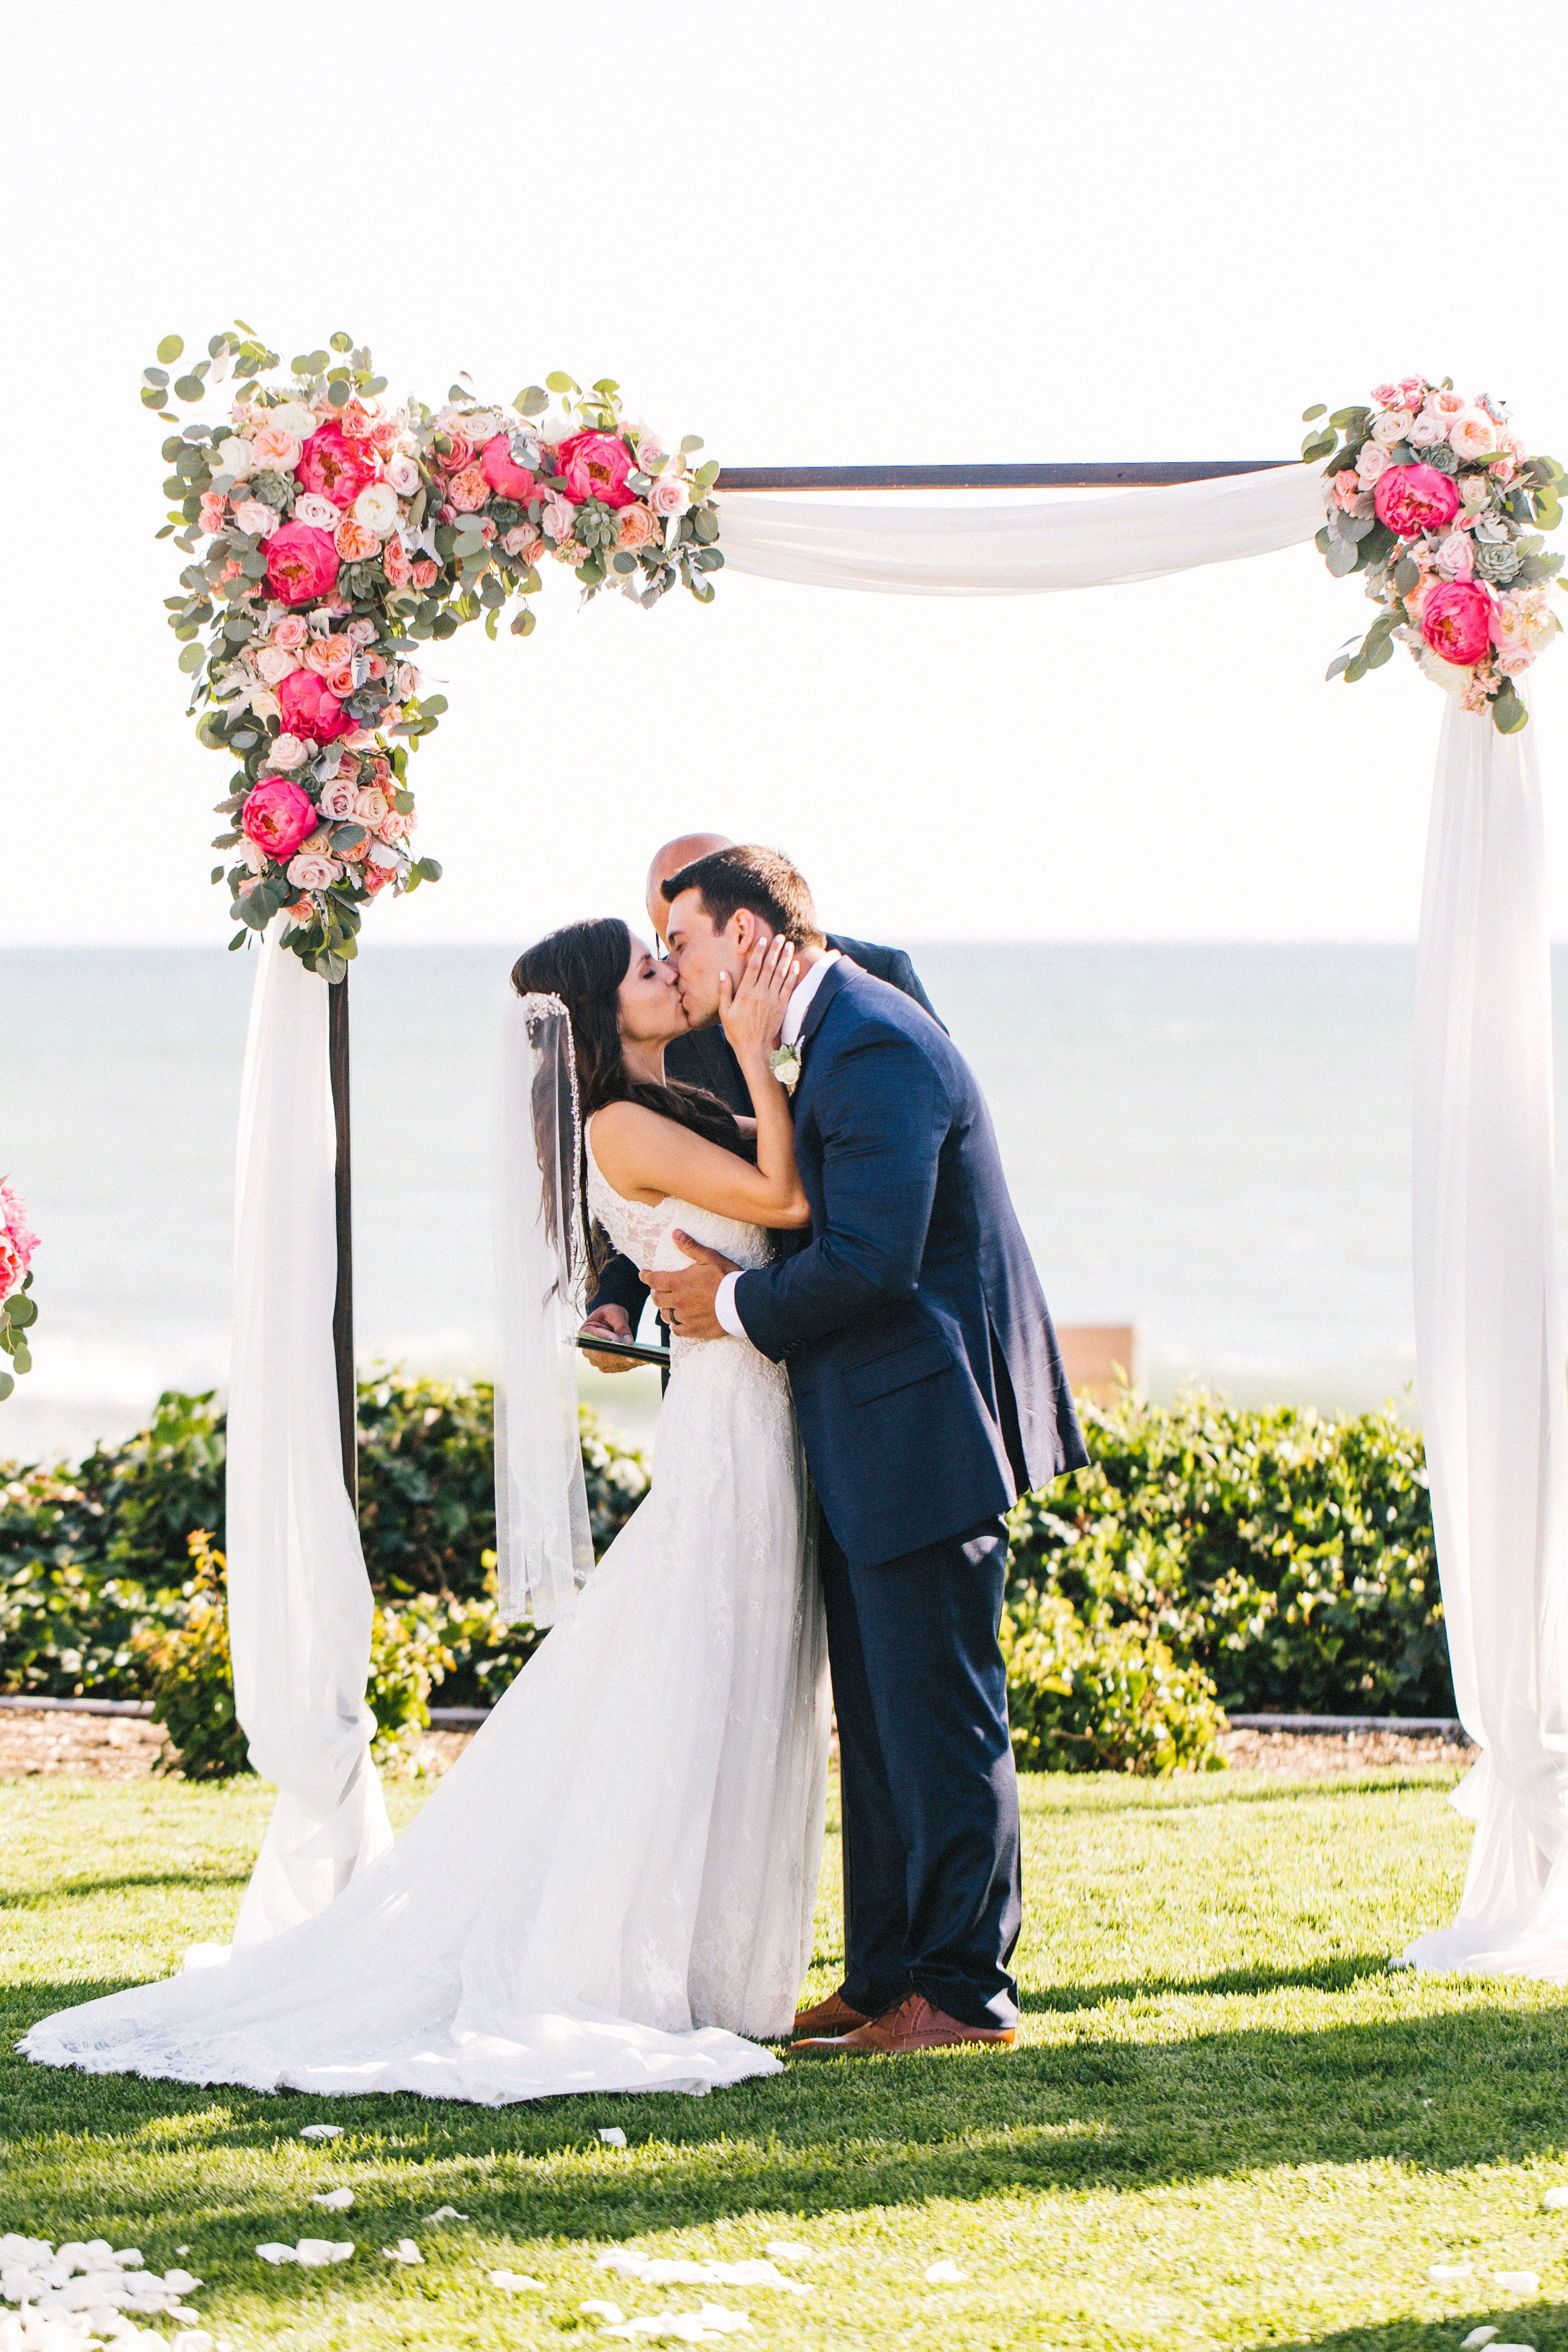 Asymmetrical wedding arch with fabric and peonies Beach